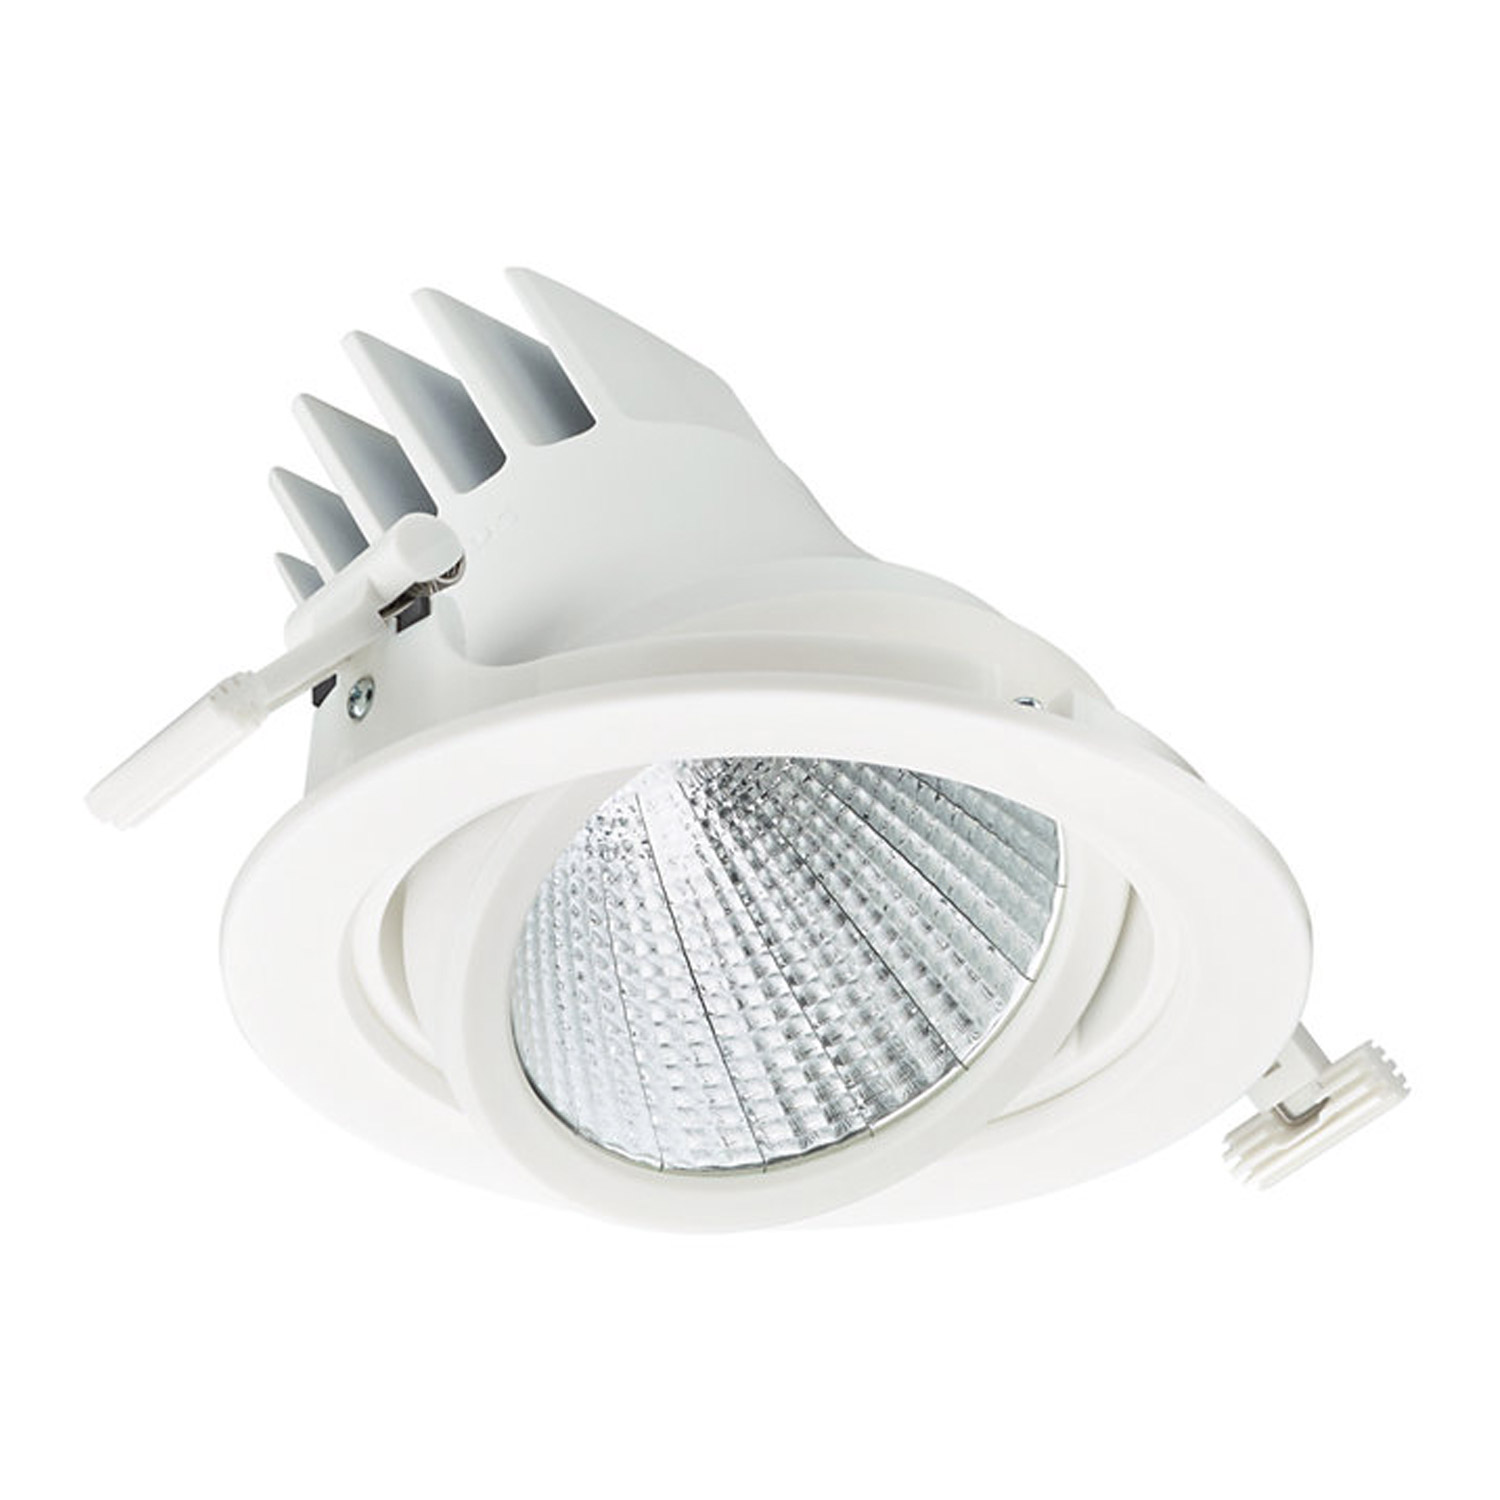 Philips LuxSpace Accent Performance LED Spot RS781B 50W 830 6000lm - Warm White